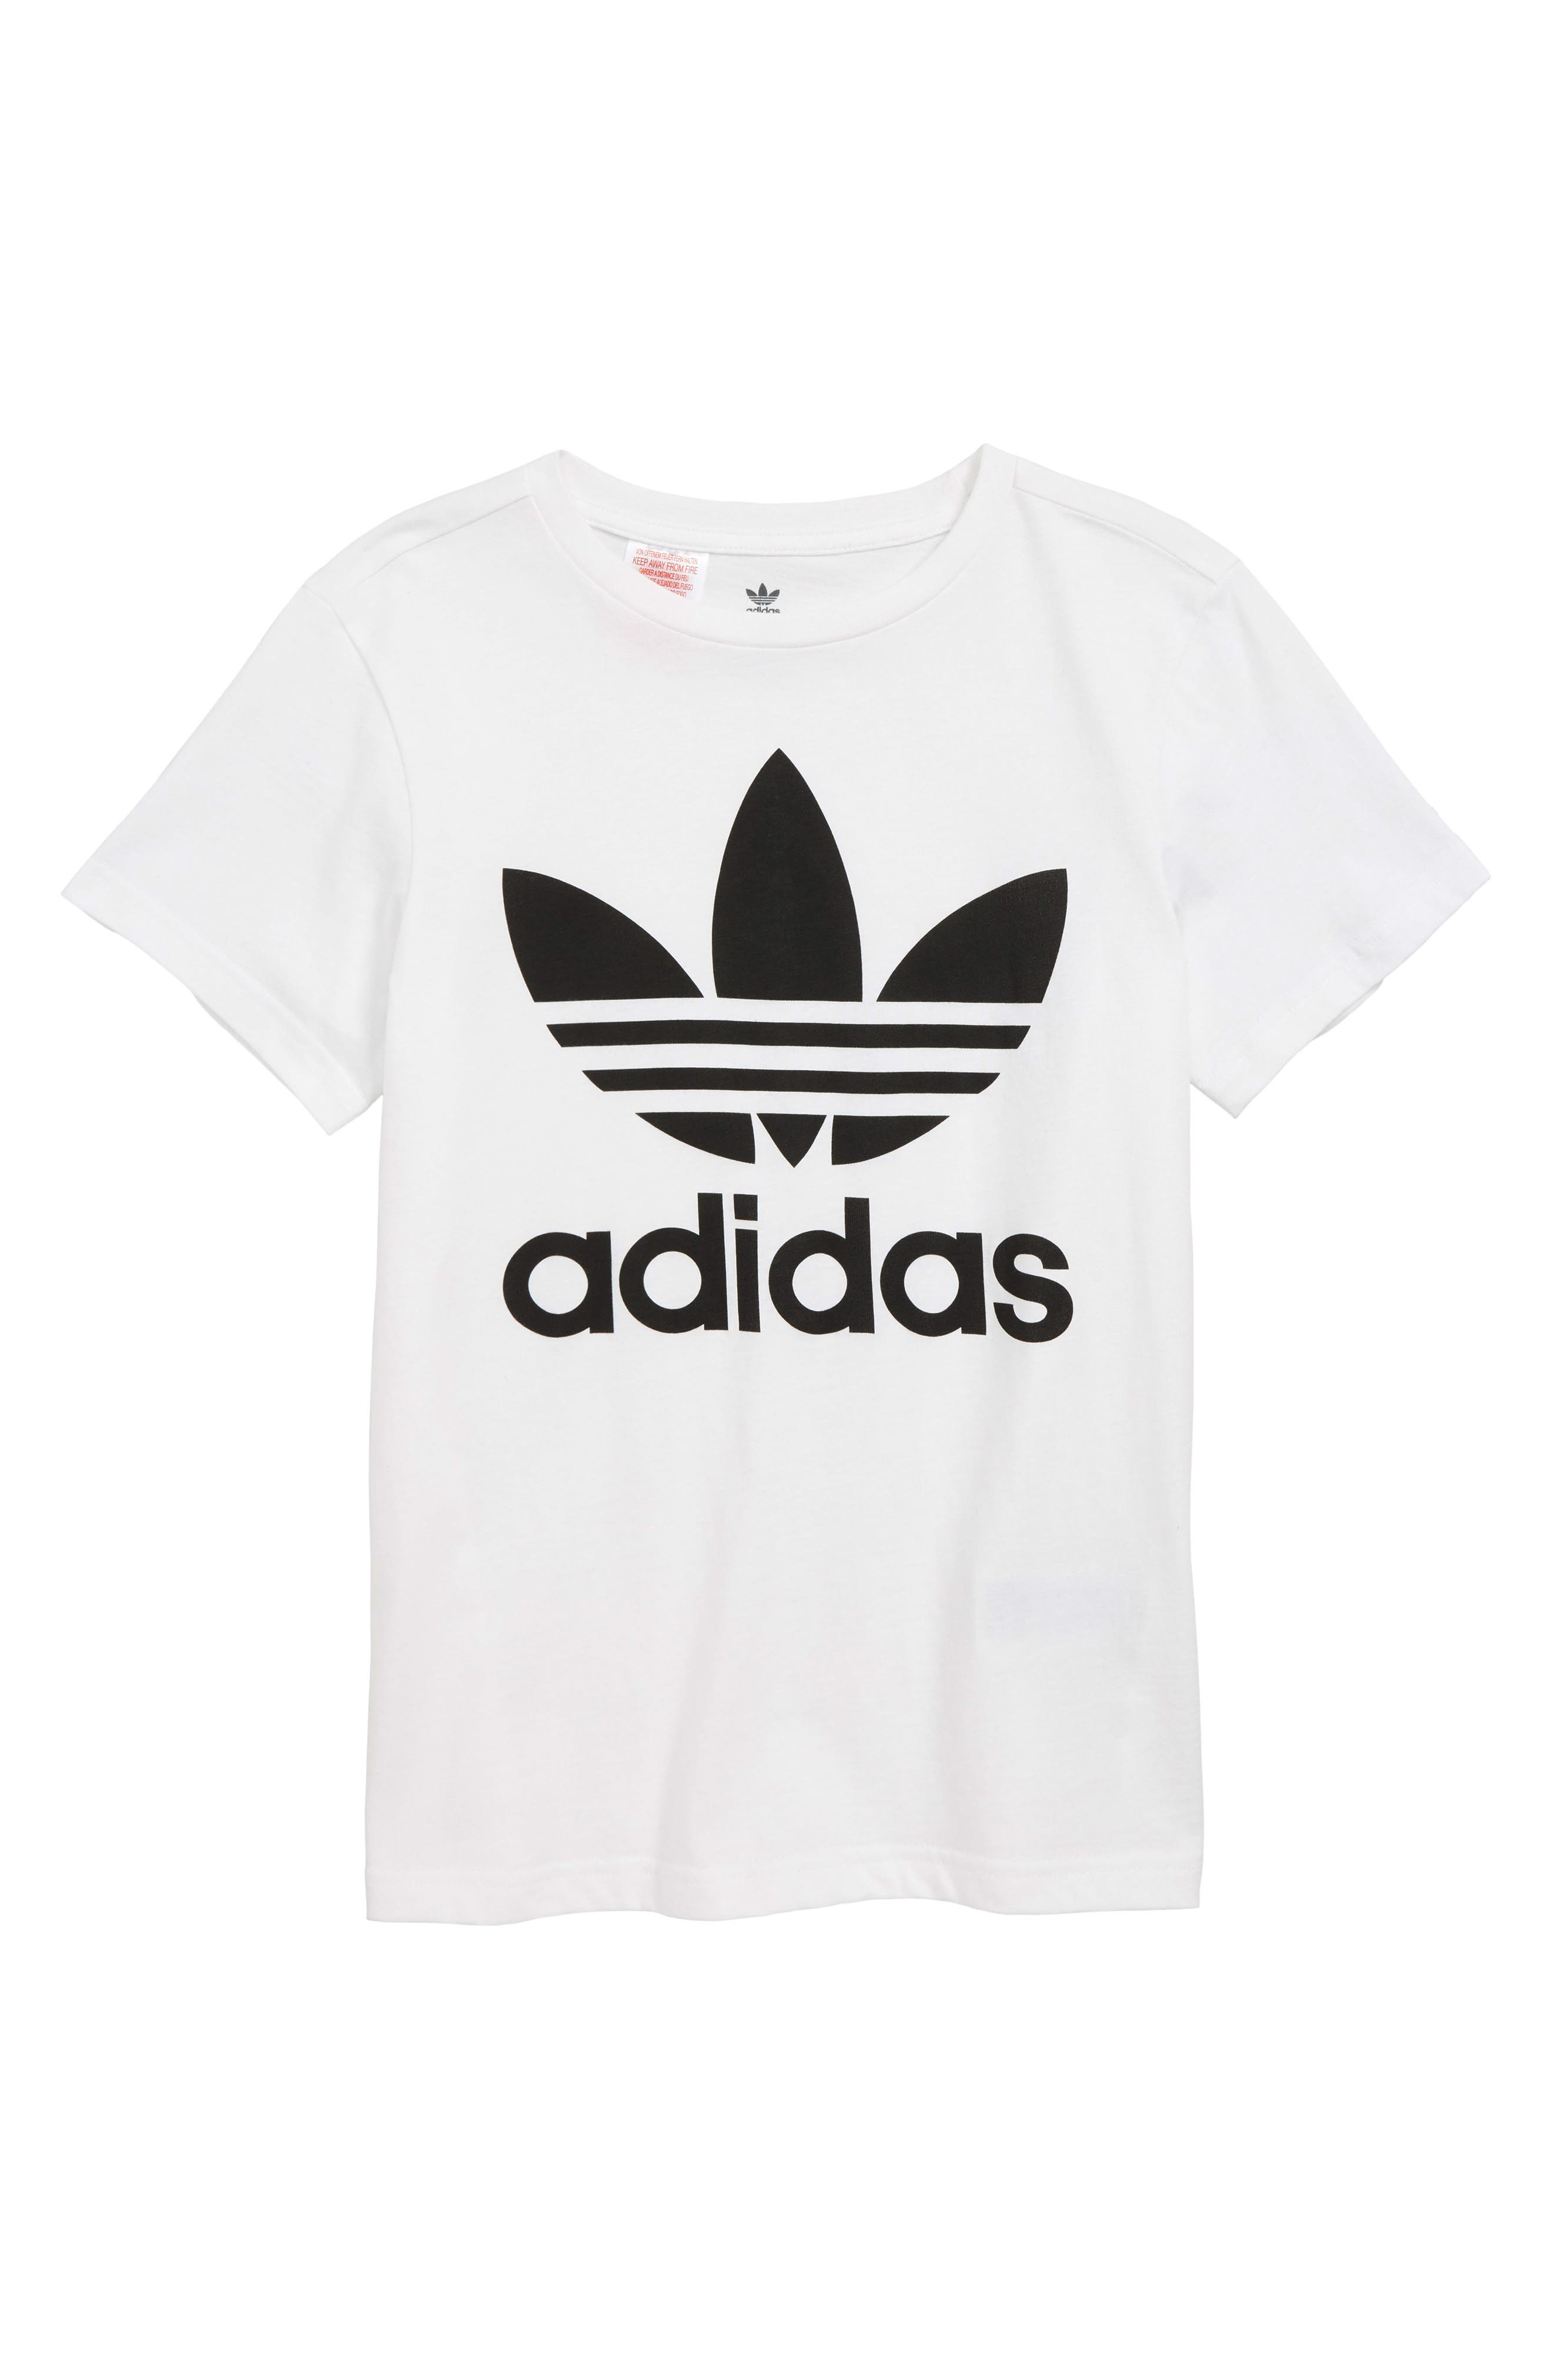 5db6f45cd9b102 adidas for Kids T-Shirts  Activewear   Shoes